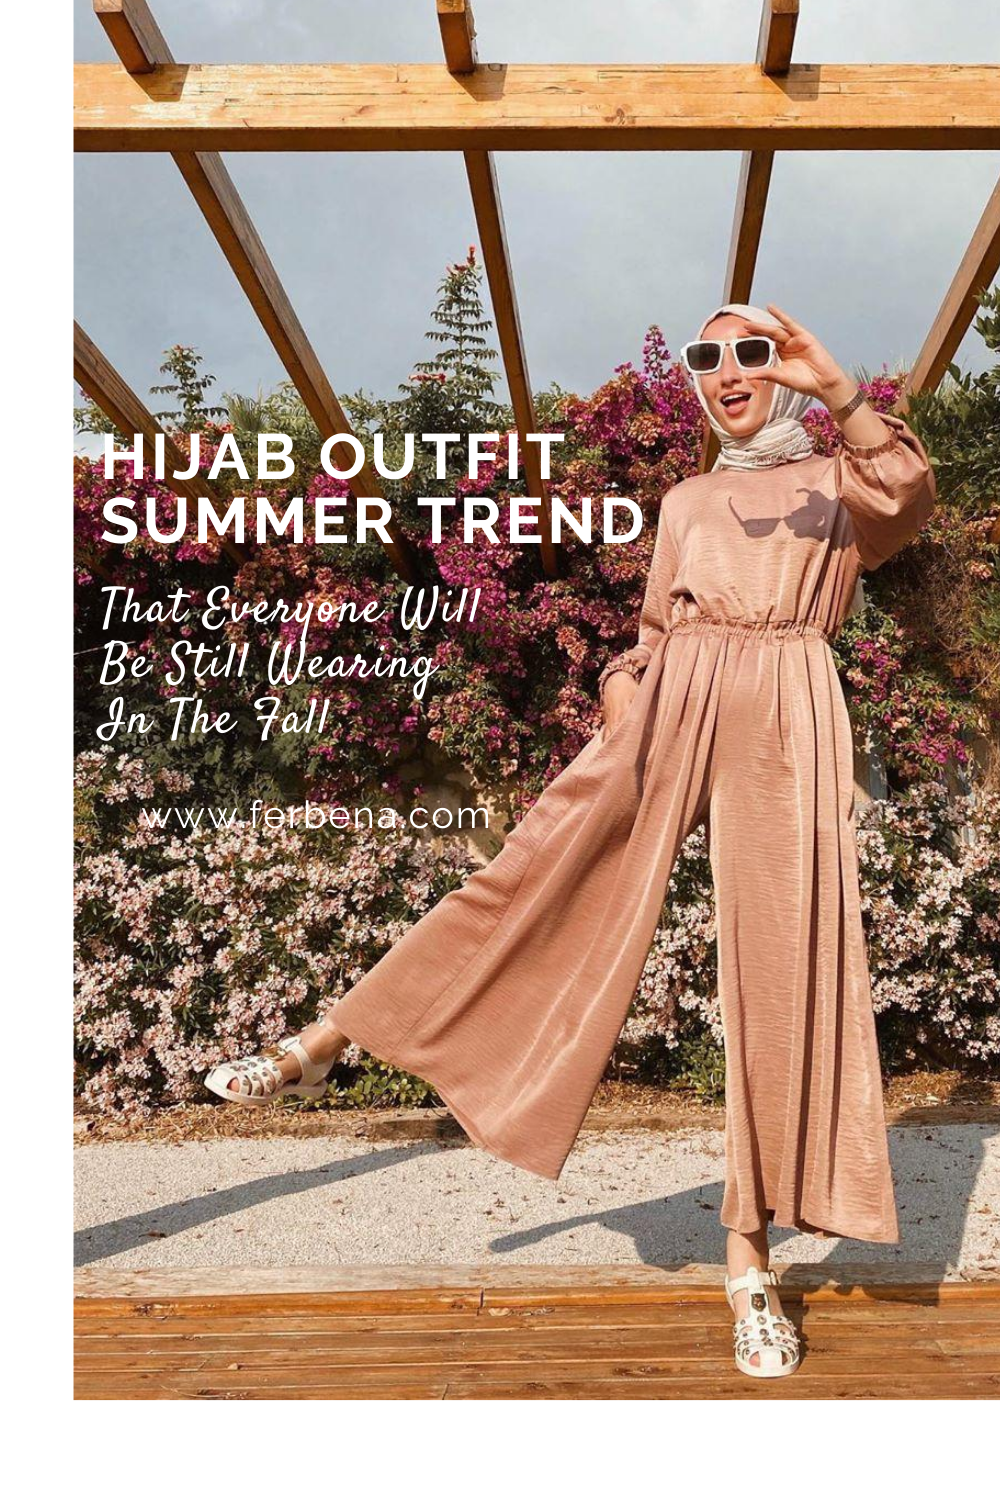 Hijab Outfit Summer Trend That Everyone Will Be Still Wearing In The Fall